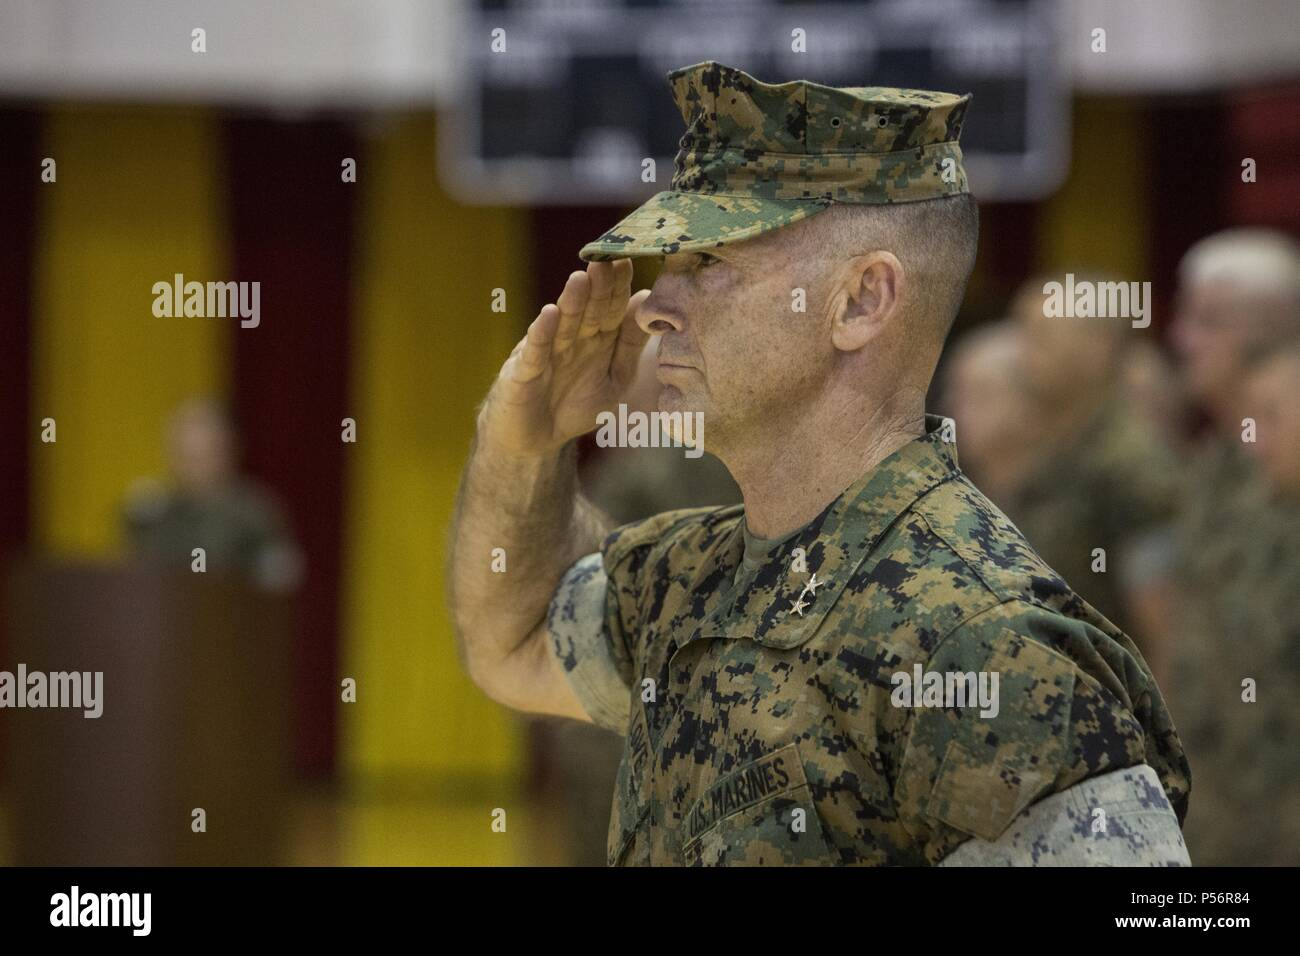 U.S. Marine Corps Maj. Gen. John K. Love, the Commanding General of 2nd Marine Division, salutes during the 6th Marine Regiment change of command ceremony at Camp Lejeune, N.C. June 12, 2018, June 12, 2018. During the ceremony, Col. Matthew S. Reid relinquished command of the unit to Col. Daniel T. Canfield Jr. (U.S. Marine Corps photo by Pfc. Nathaniel Q. Hamilton). () - Stock Image